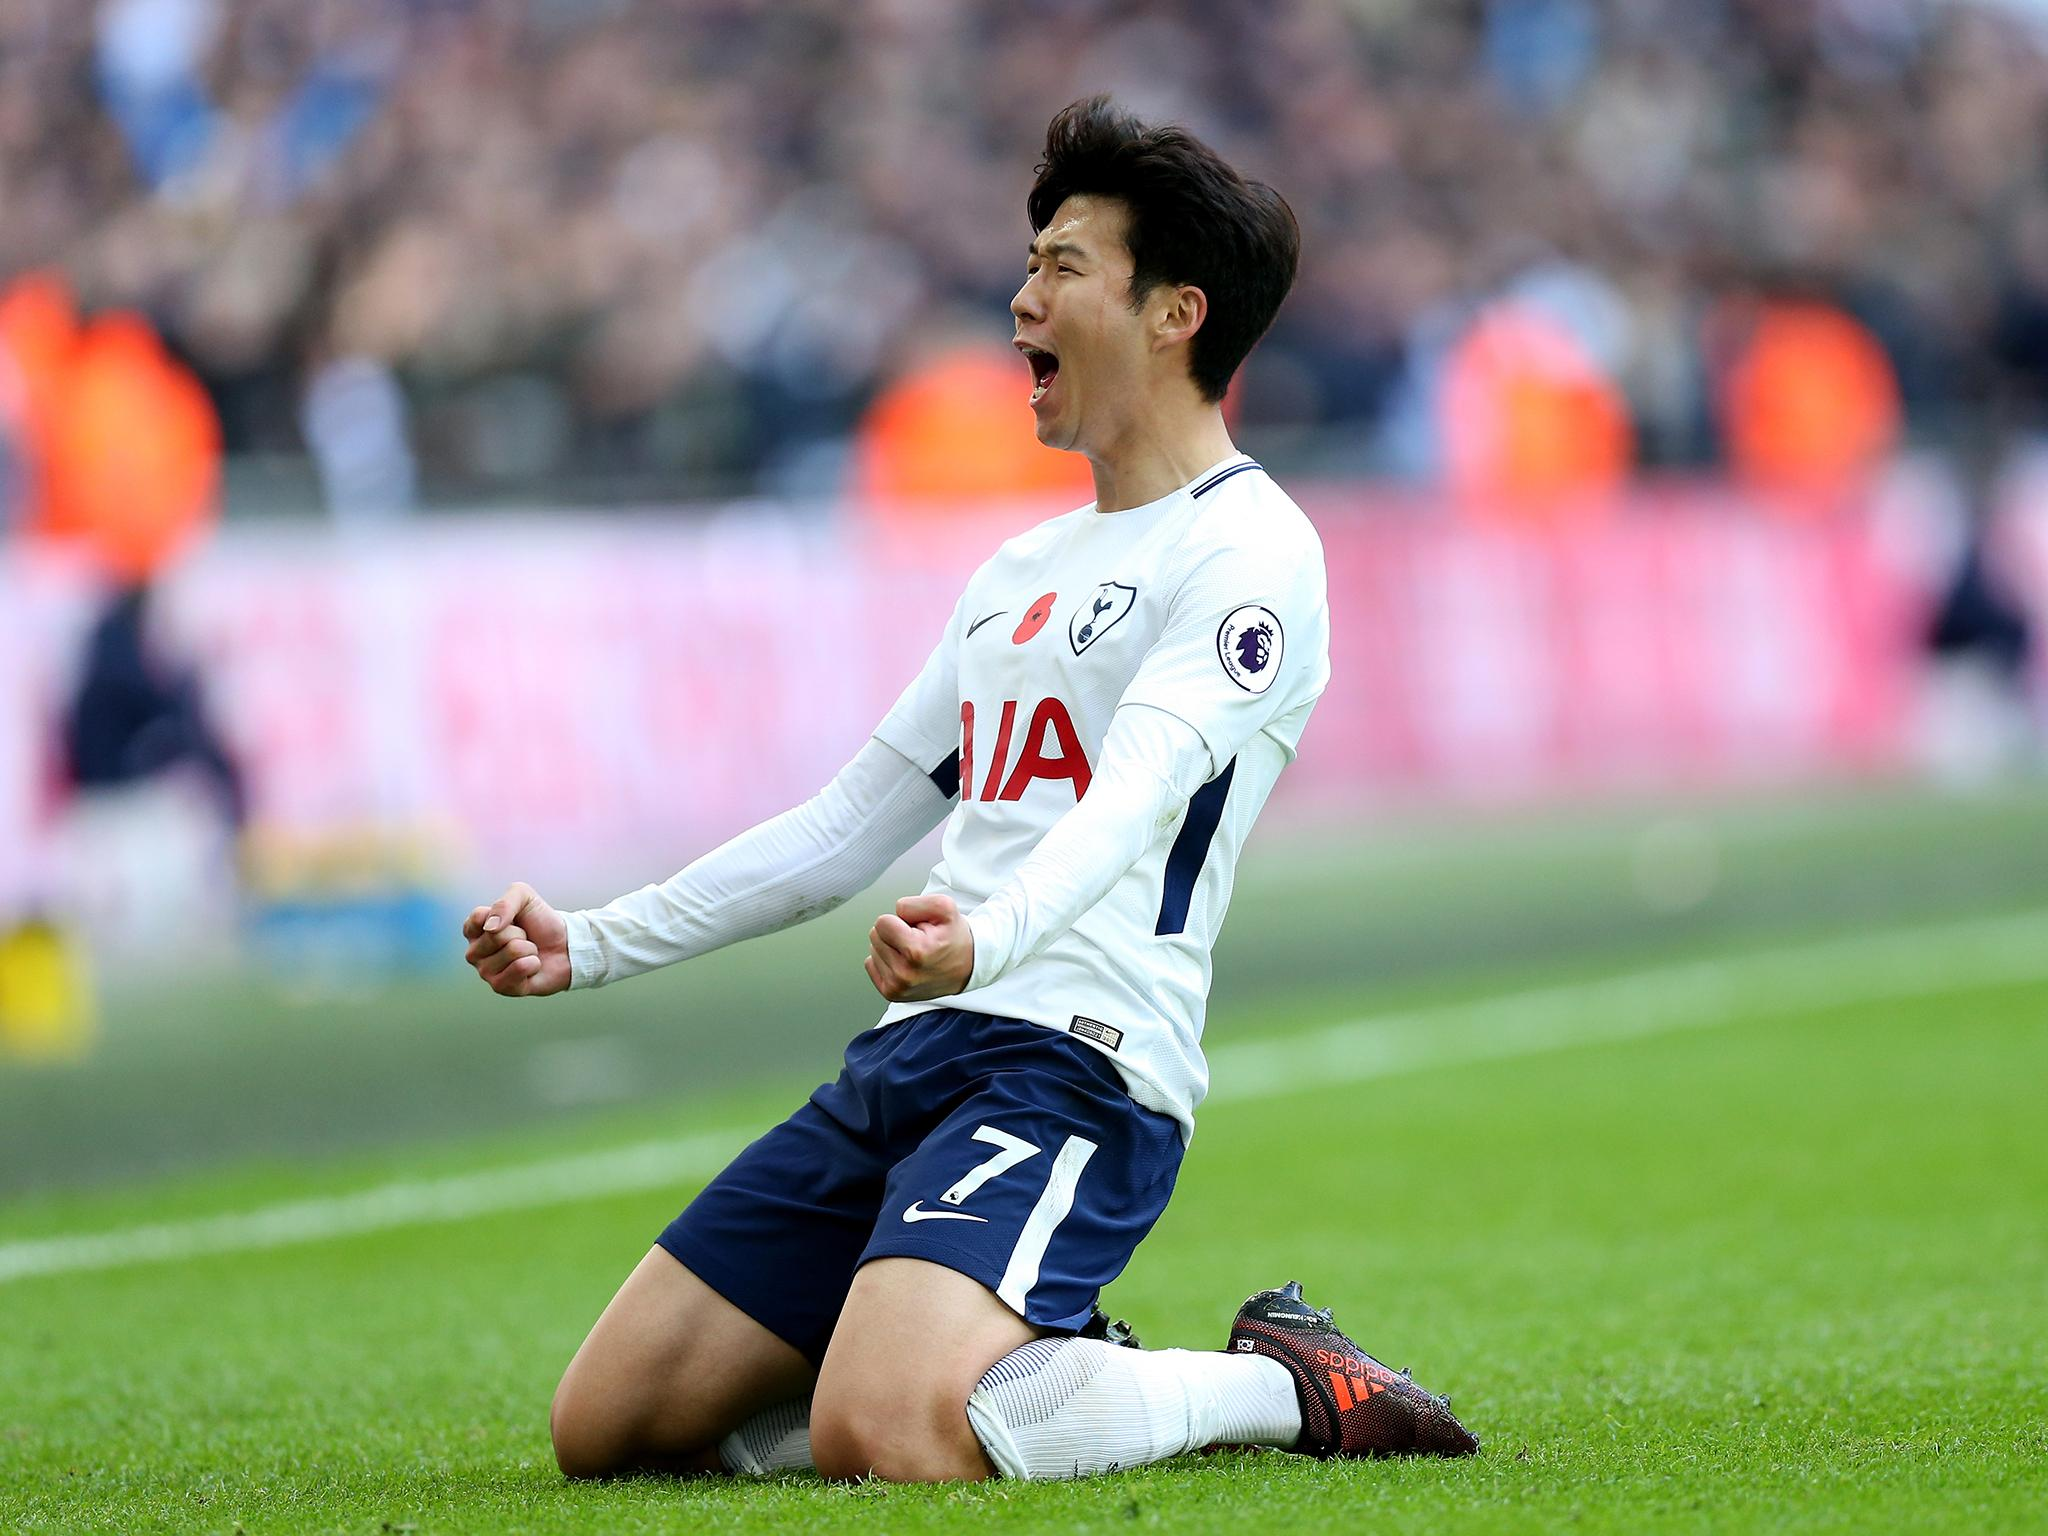 Tottenham brought back down to earth but at least land on for Son heung min squadre attuali